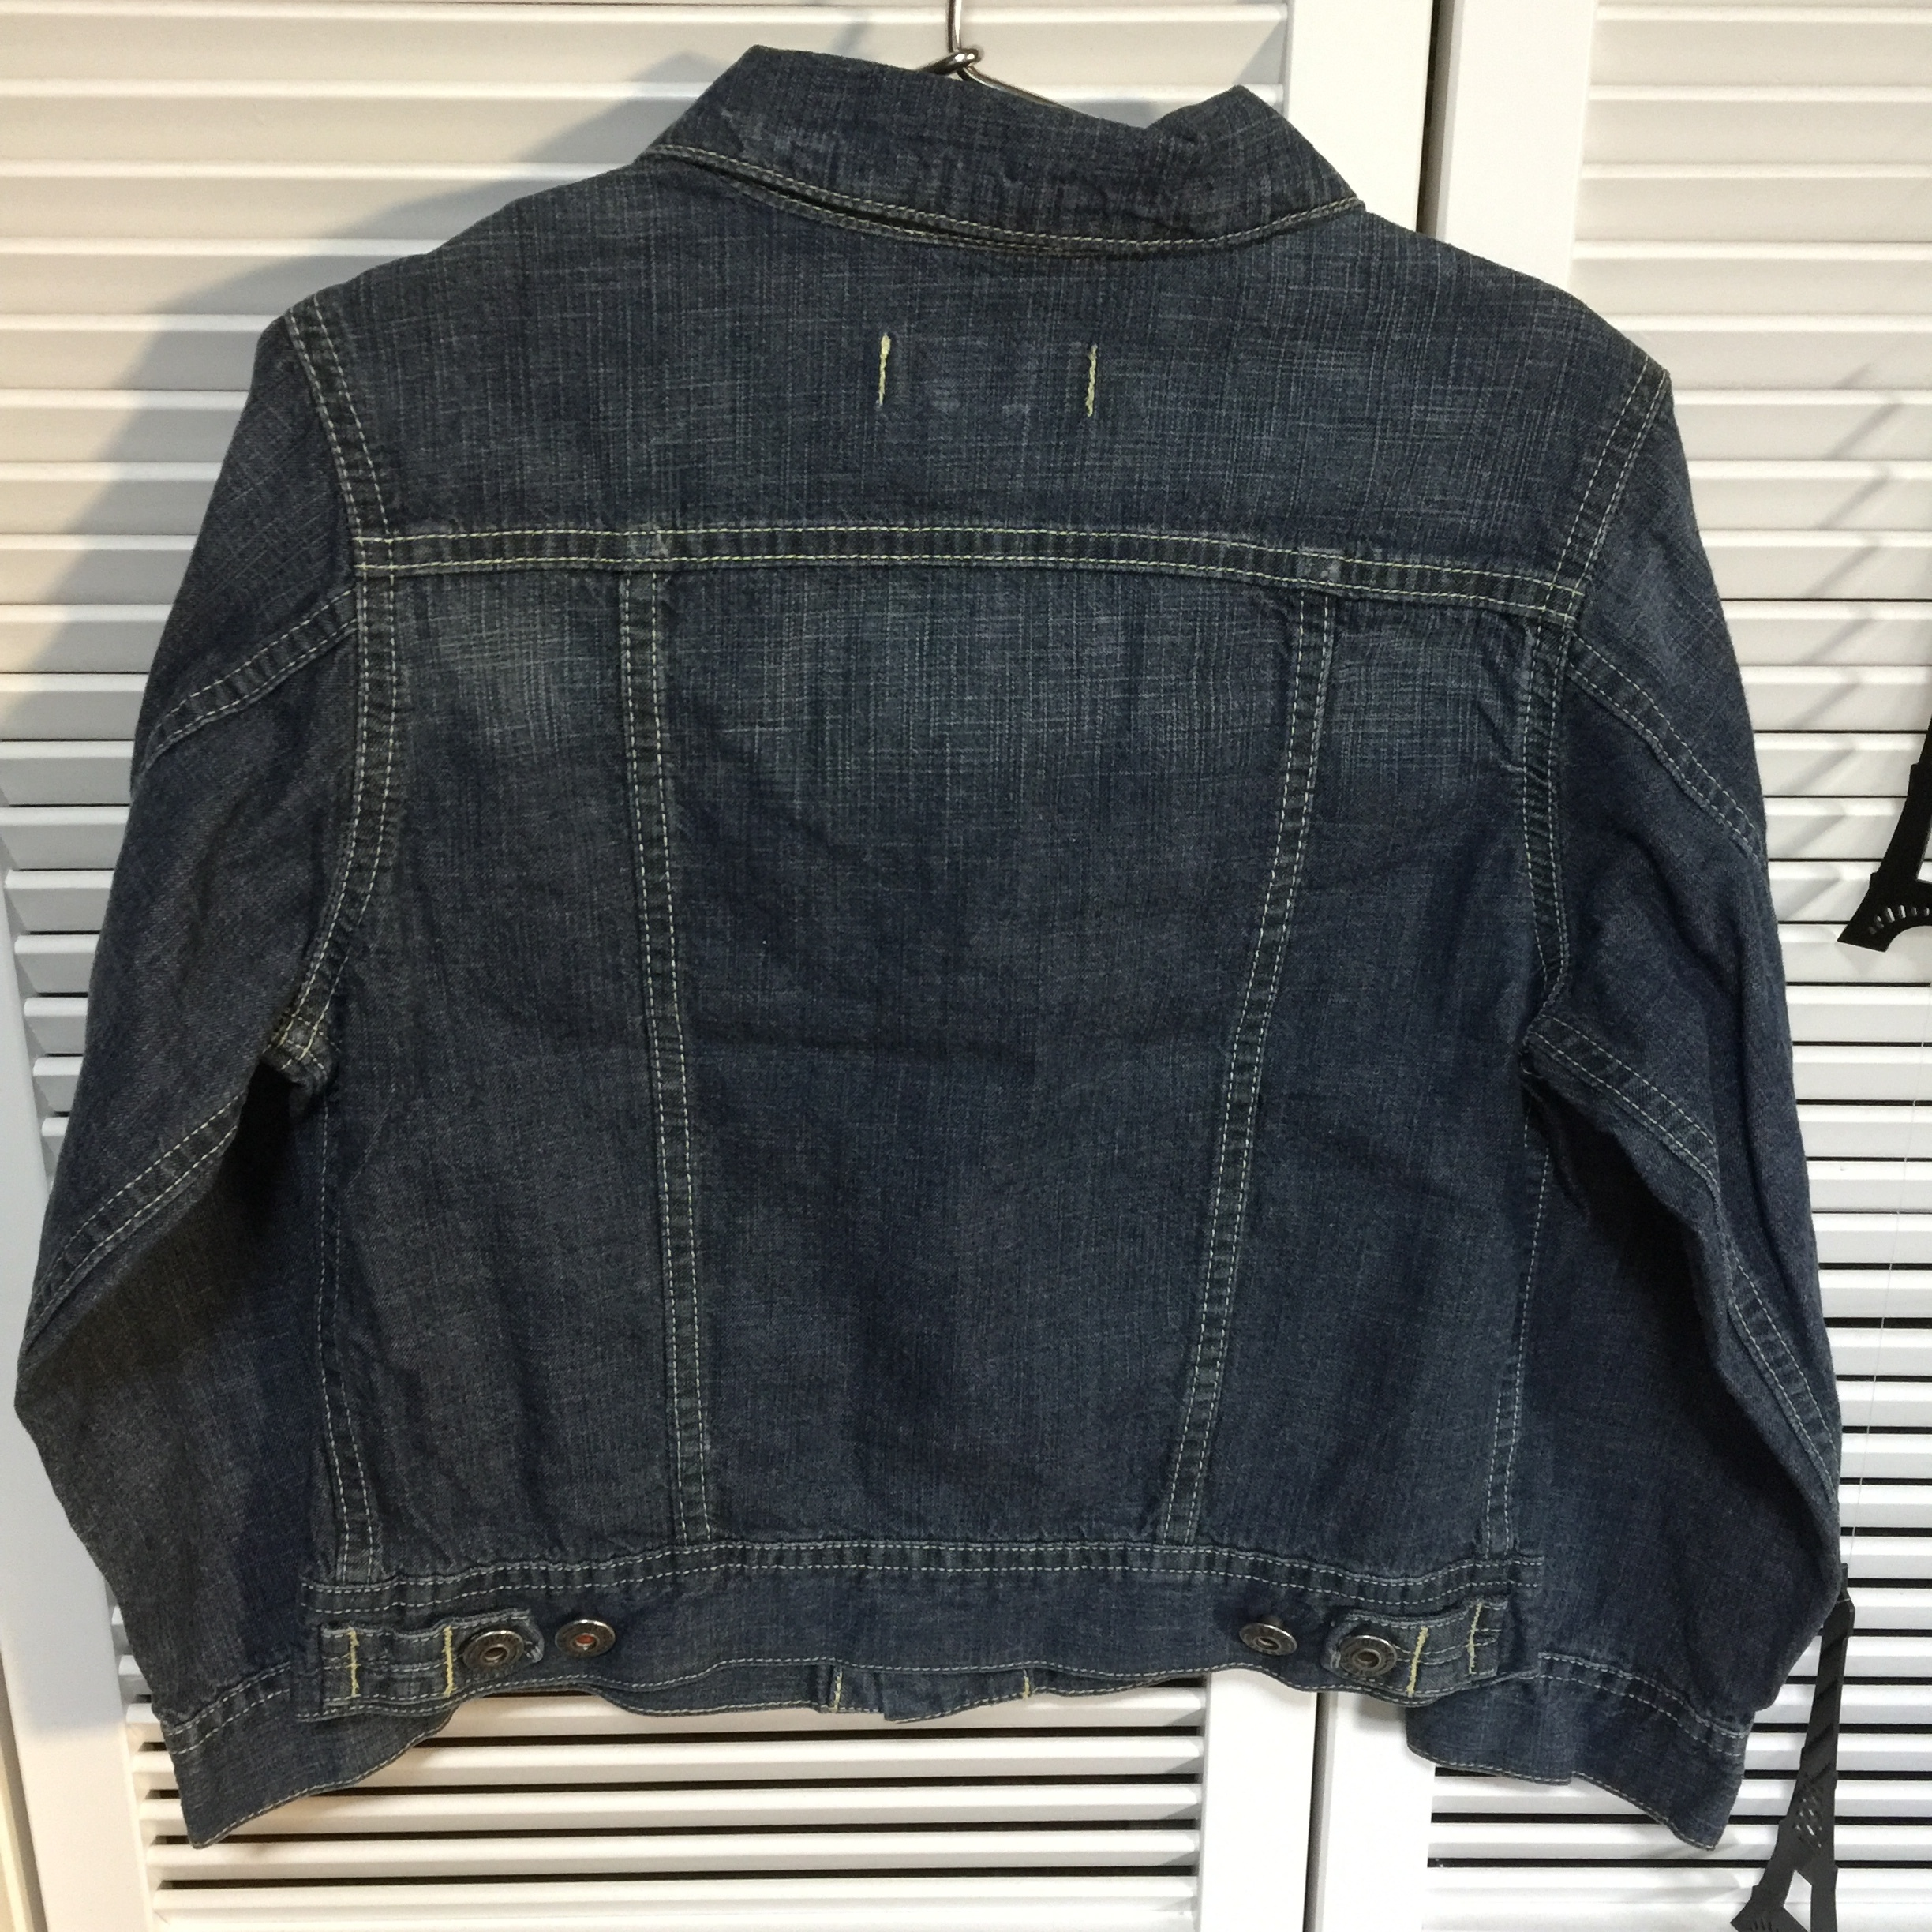 【SALE】DIESELキッズGジャン★5Y113cm/パリ買付レア商品